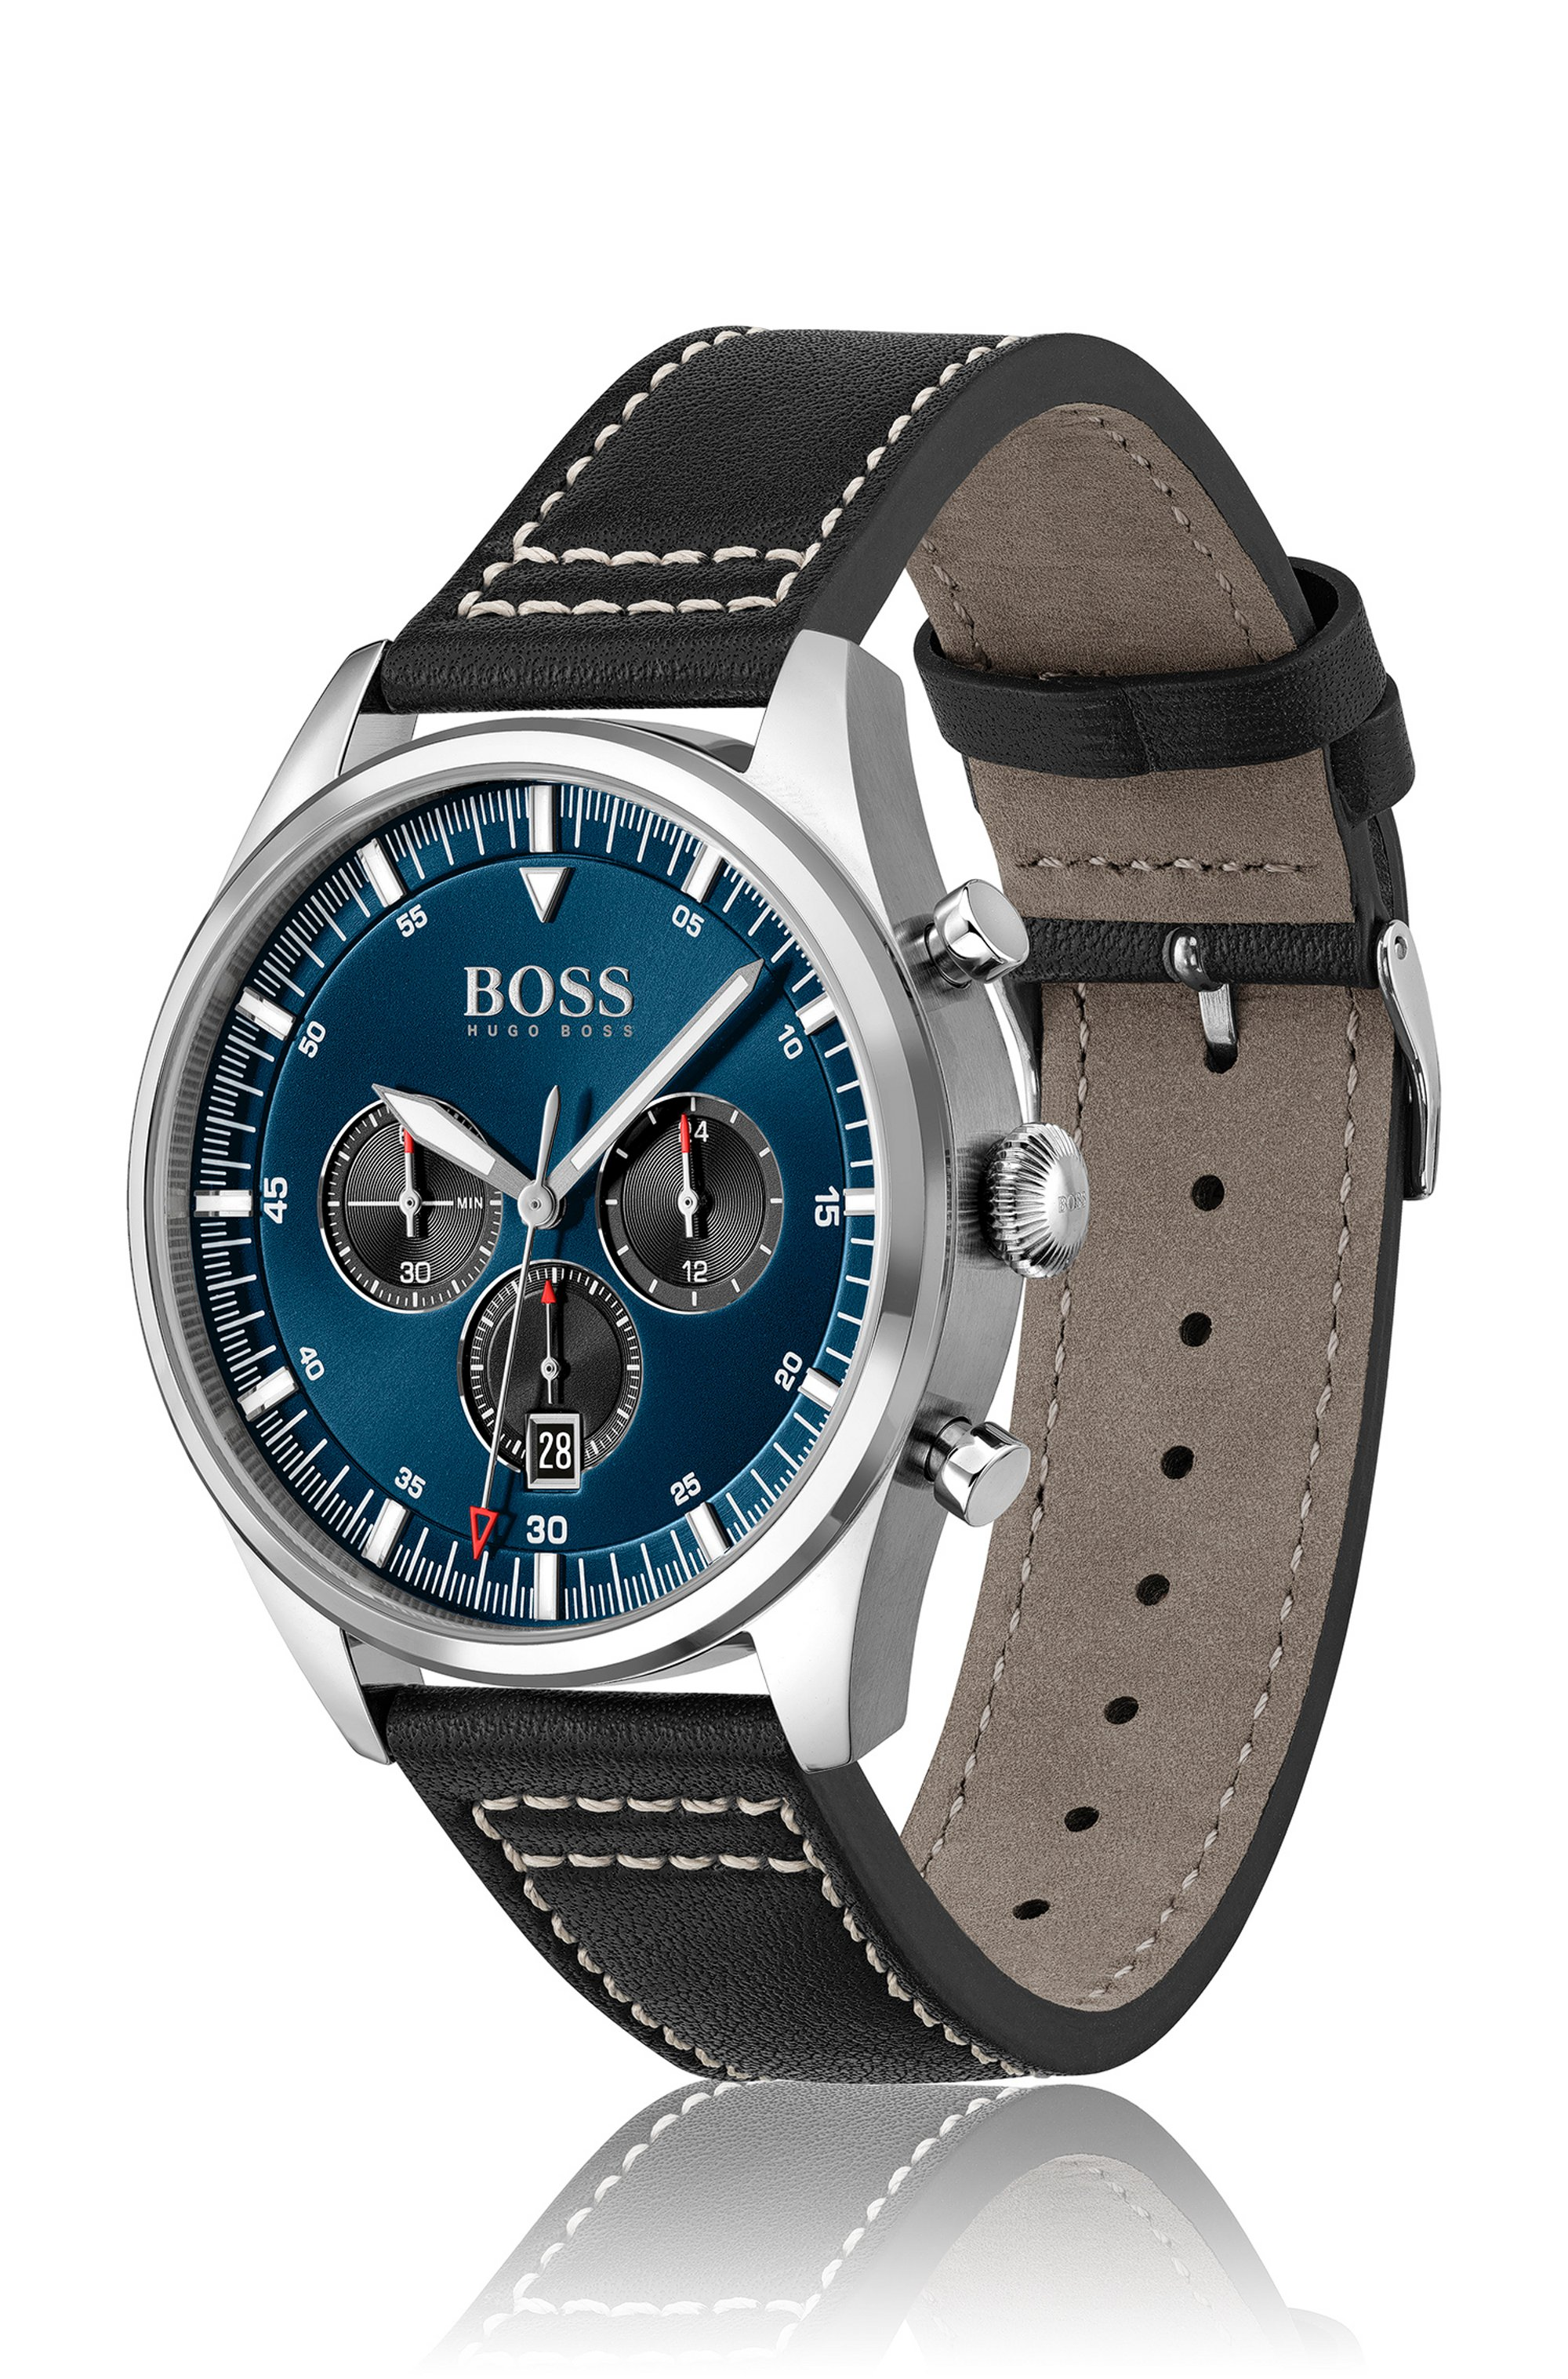 Blue-dial chronograph watch with stitched leather strap